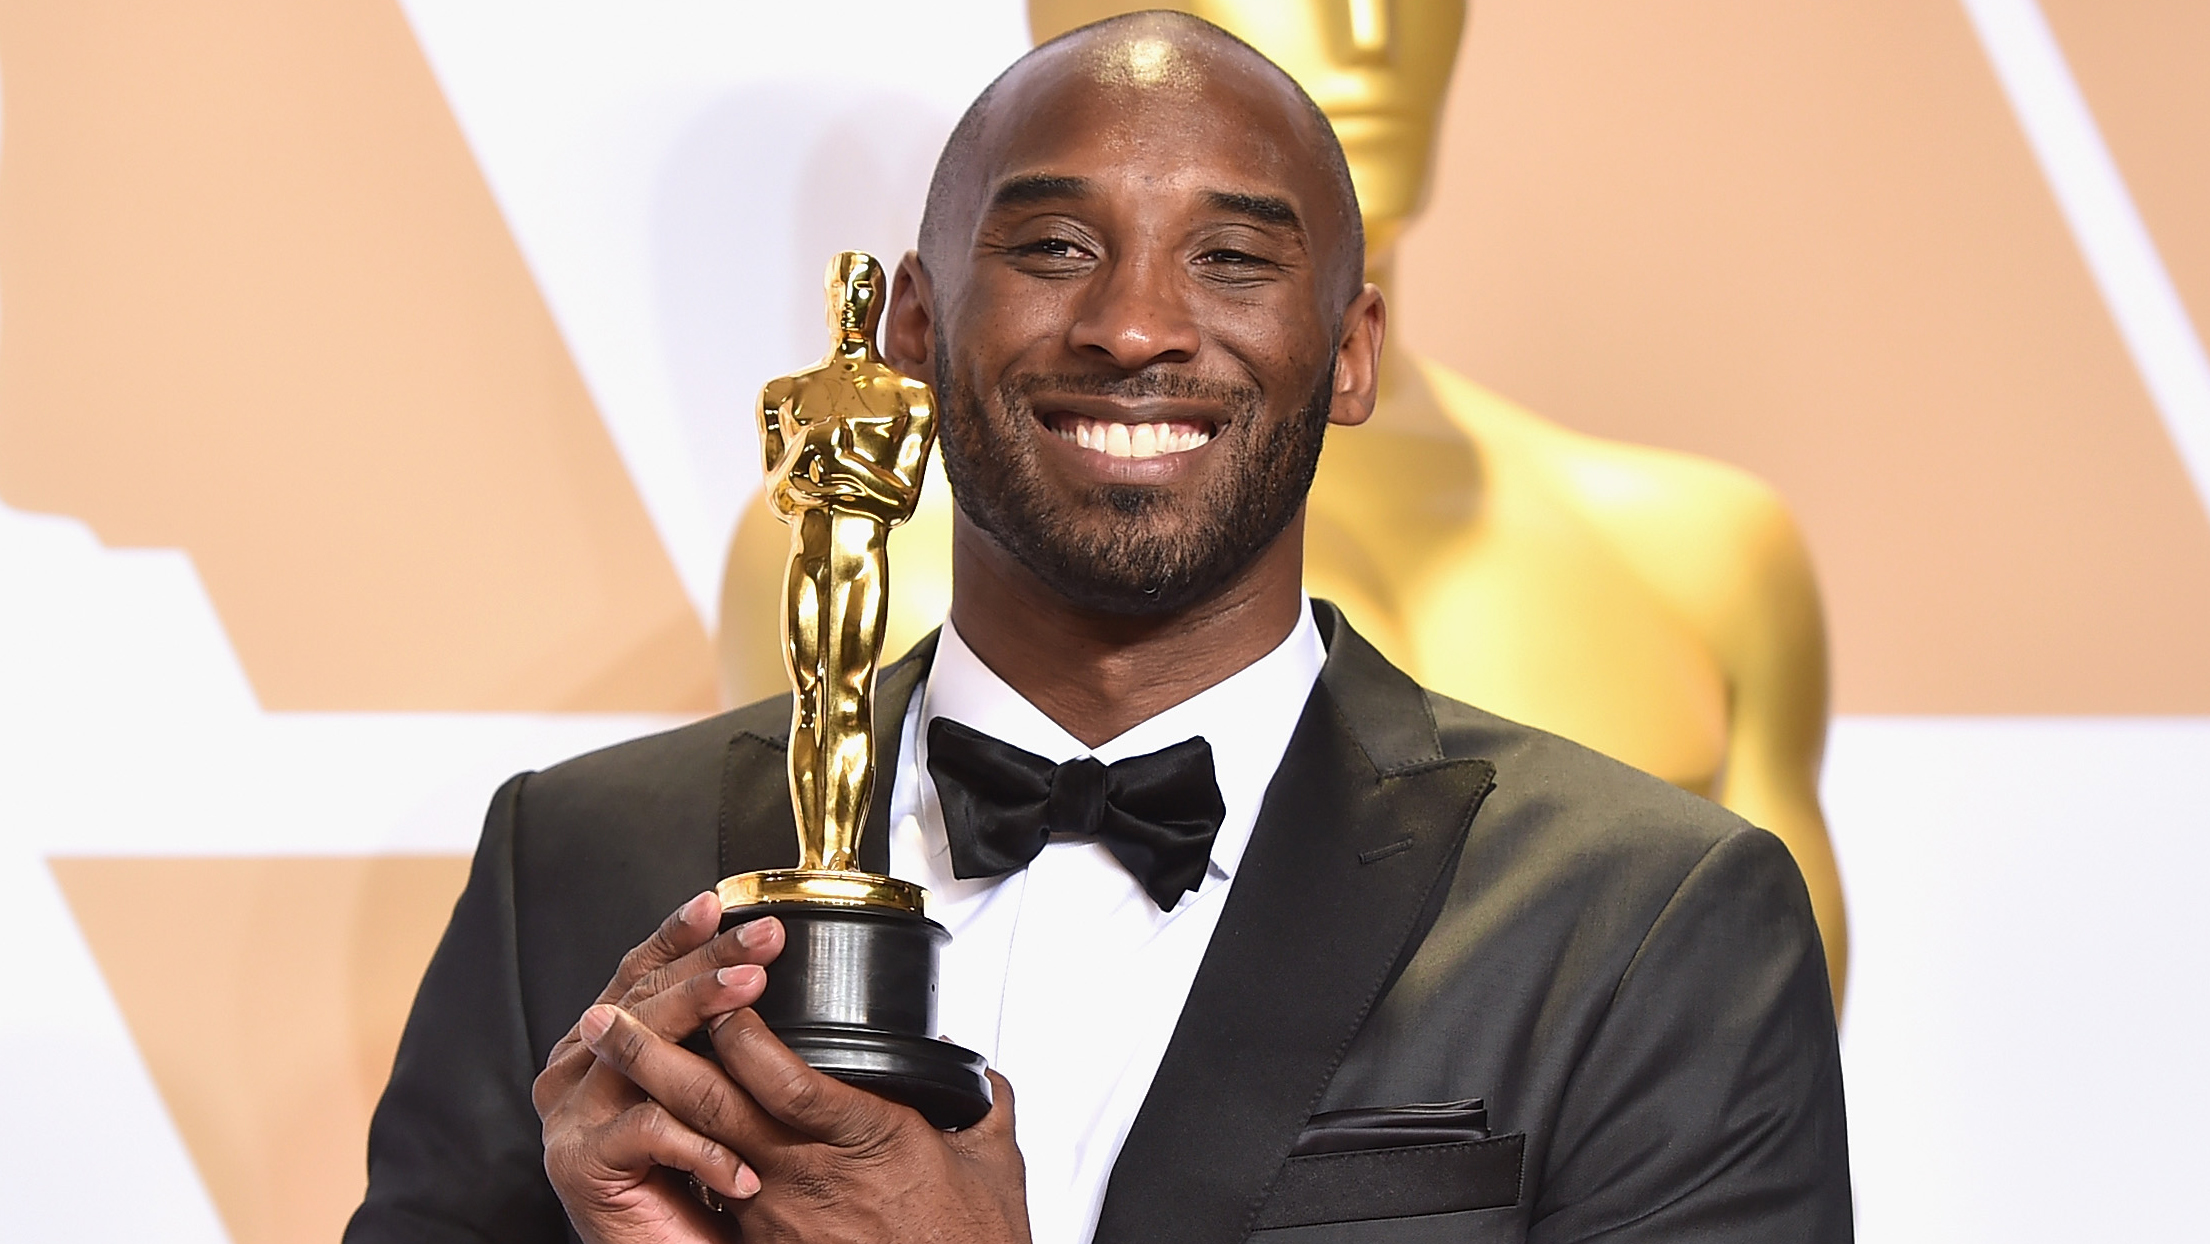 Westlake Legal Group Kobe-Bryant-Oscar Oscars to 'embrace' Kobe Bryant during In Memoriam segment, producers say Julius Young fox-news/person/kobe-bryant fox-news/entertainment/movies fox-news/entertainment/events/oscars fox-news/entertainment/events/departed fox-news/entertainment fox news fnc/entertainment fnc article a9e644e0-53d4-5fc3-8bf2-8b4f55963680